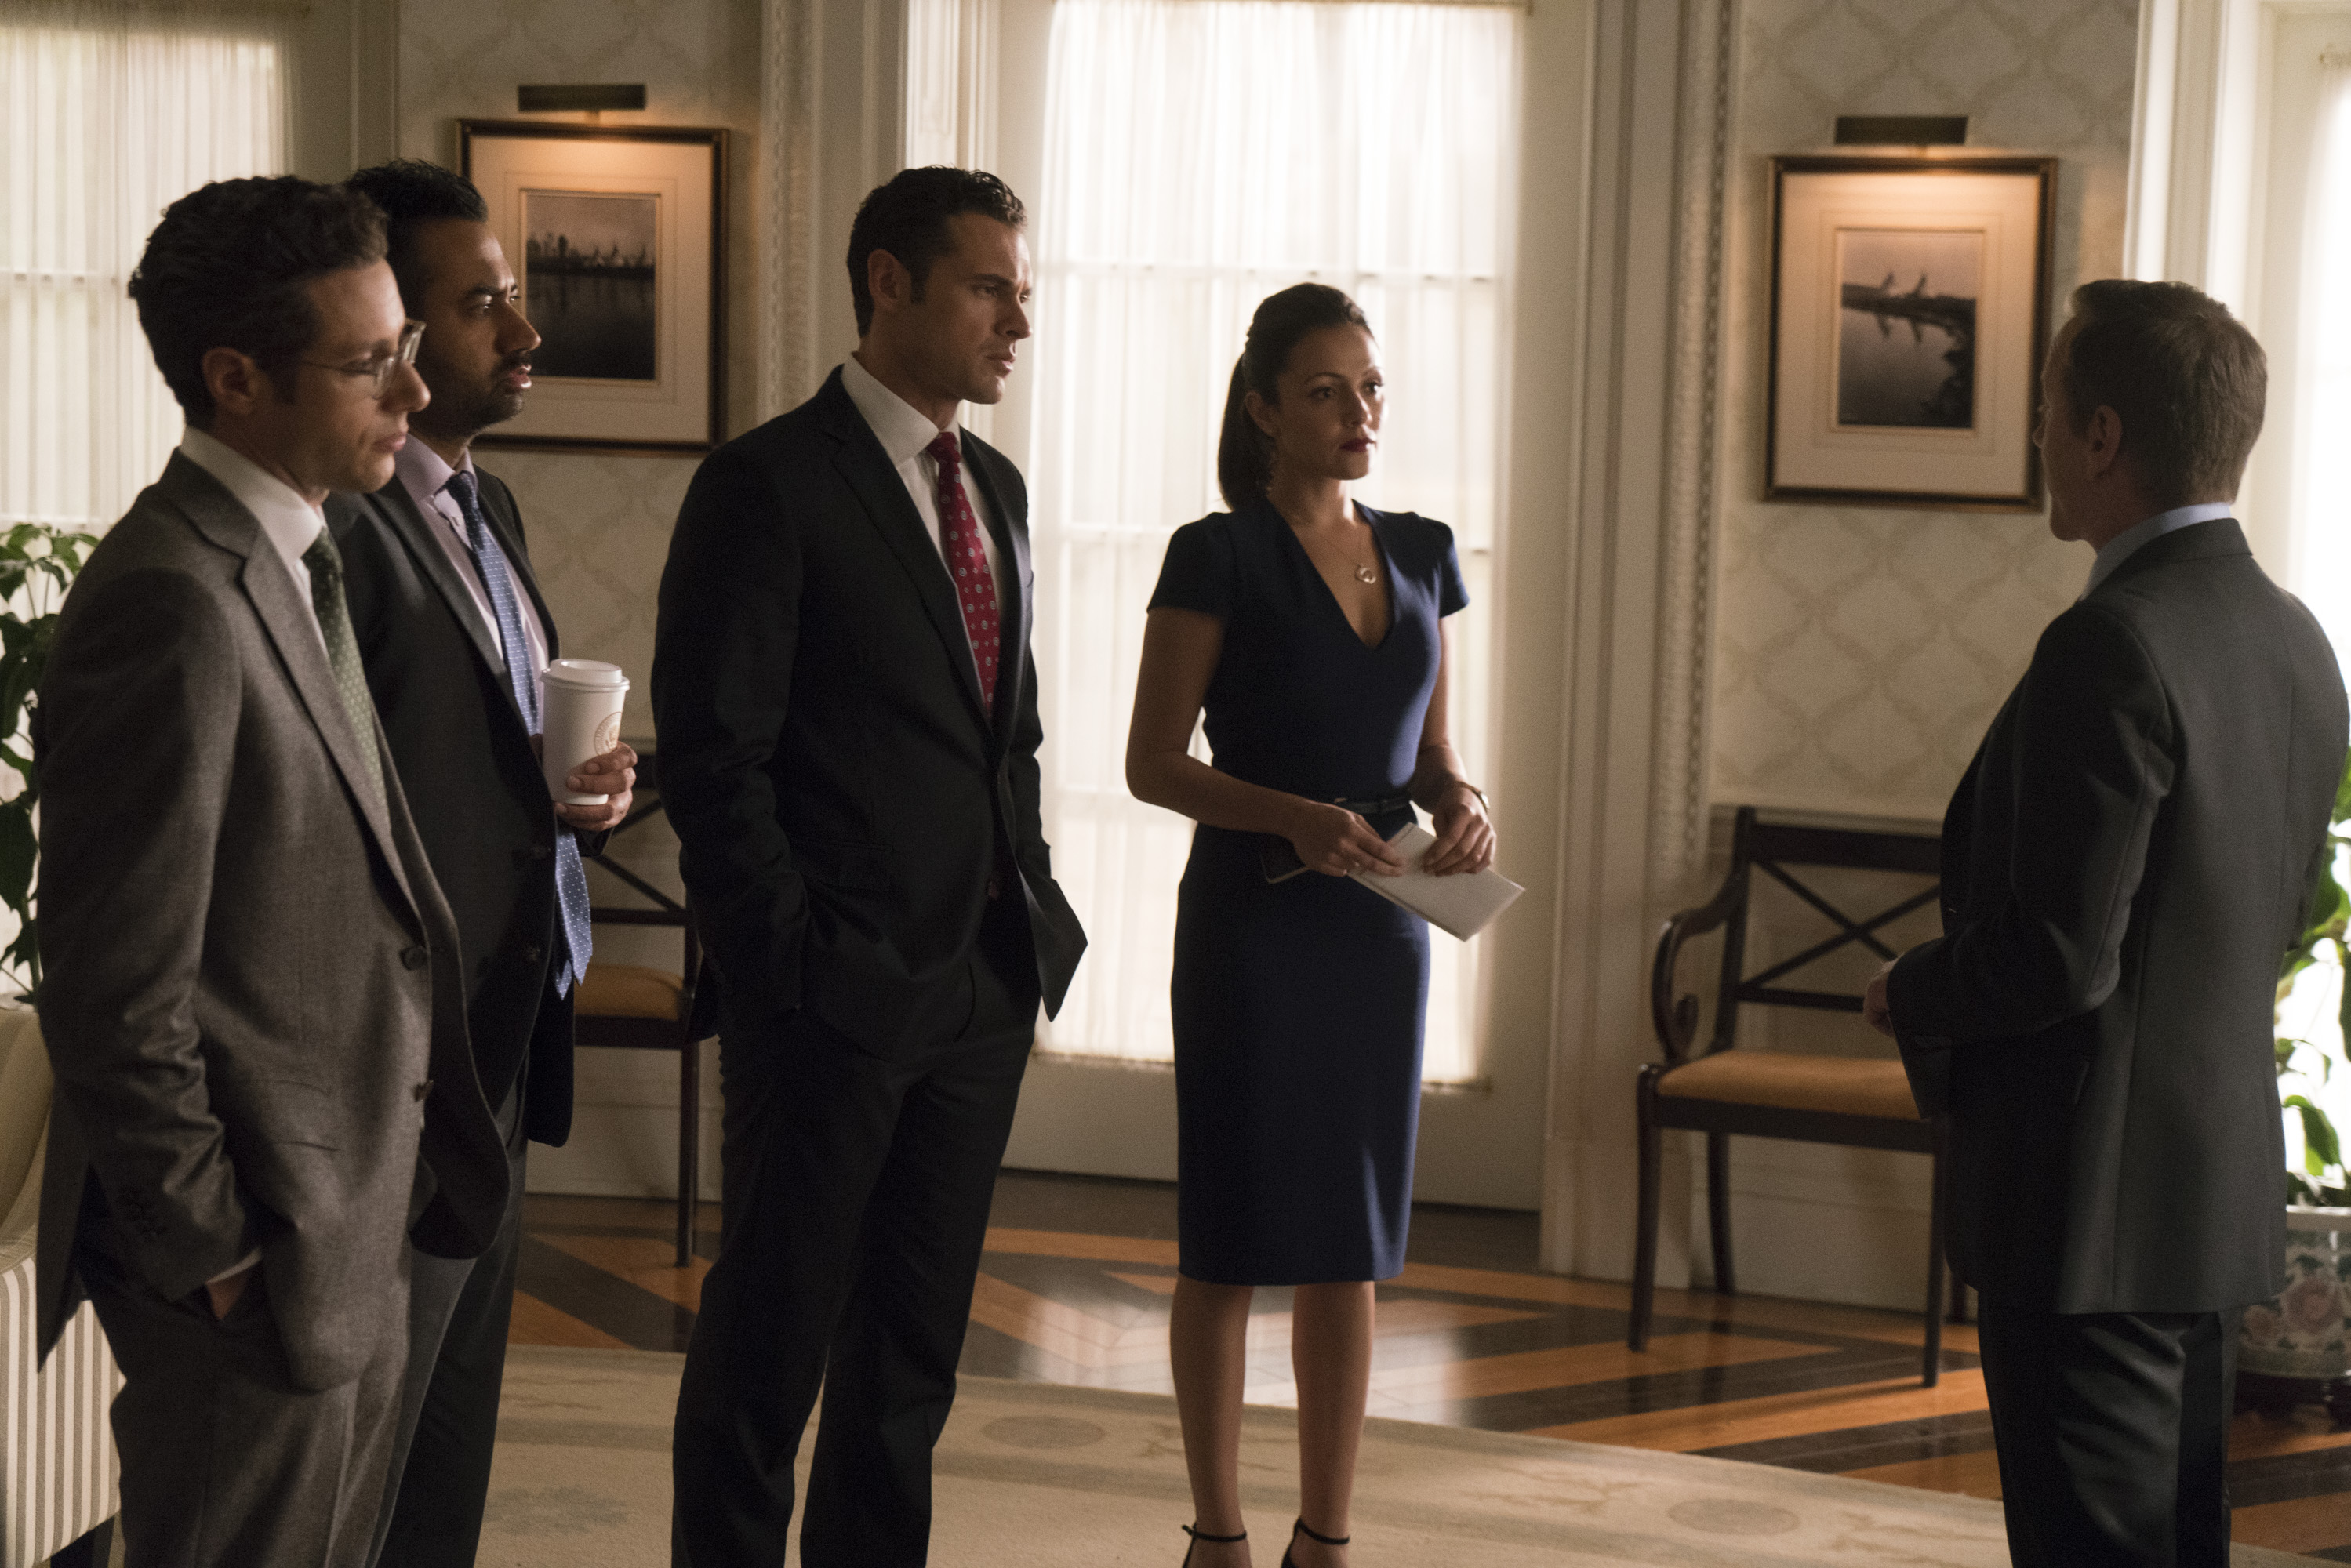 Designated Survivor' Season 2, Episode 9 'Three Letter Day' Recap